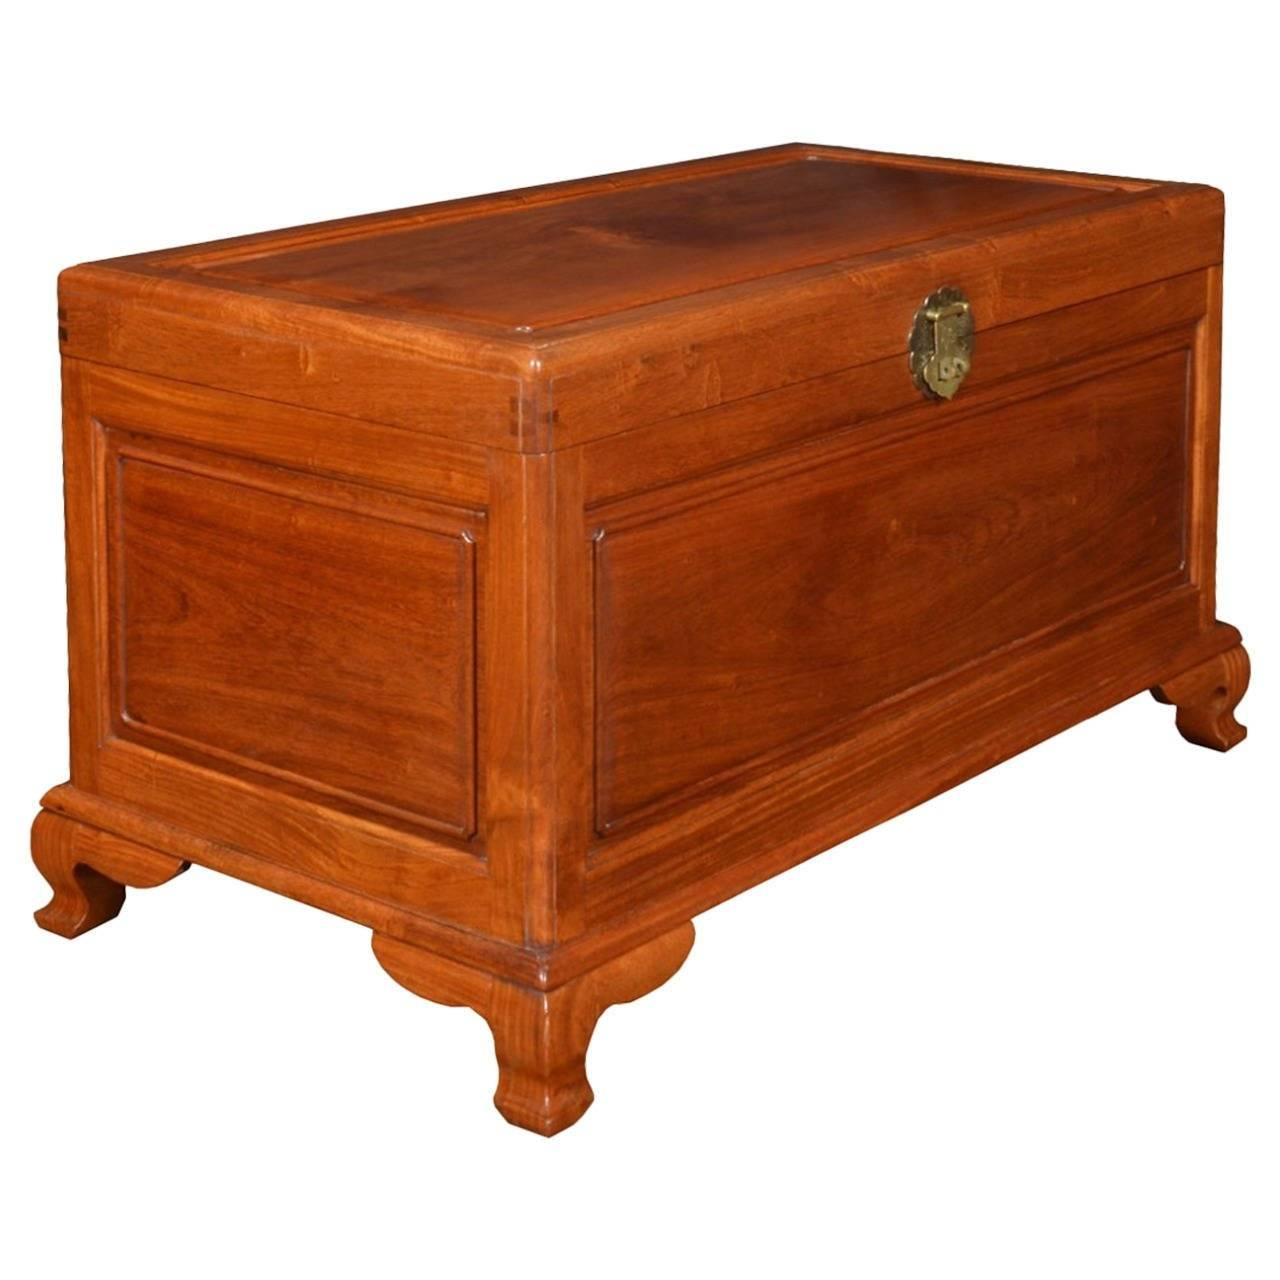 Chinese Export Camphor Wood Trunk Coffee Table For Sale At 1Stdibs within Trunk Coffee Tables (Image 5 of 30)